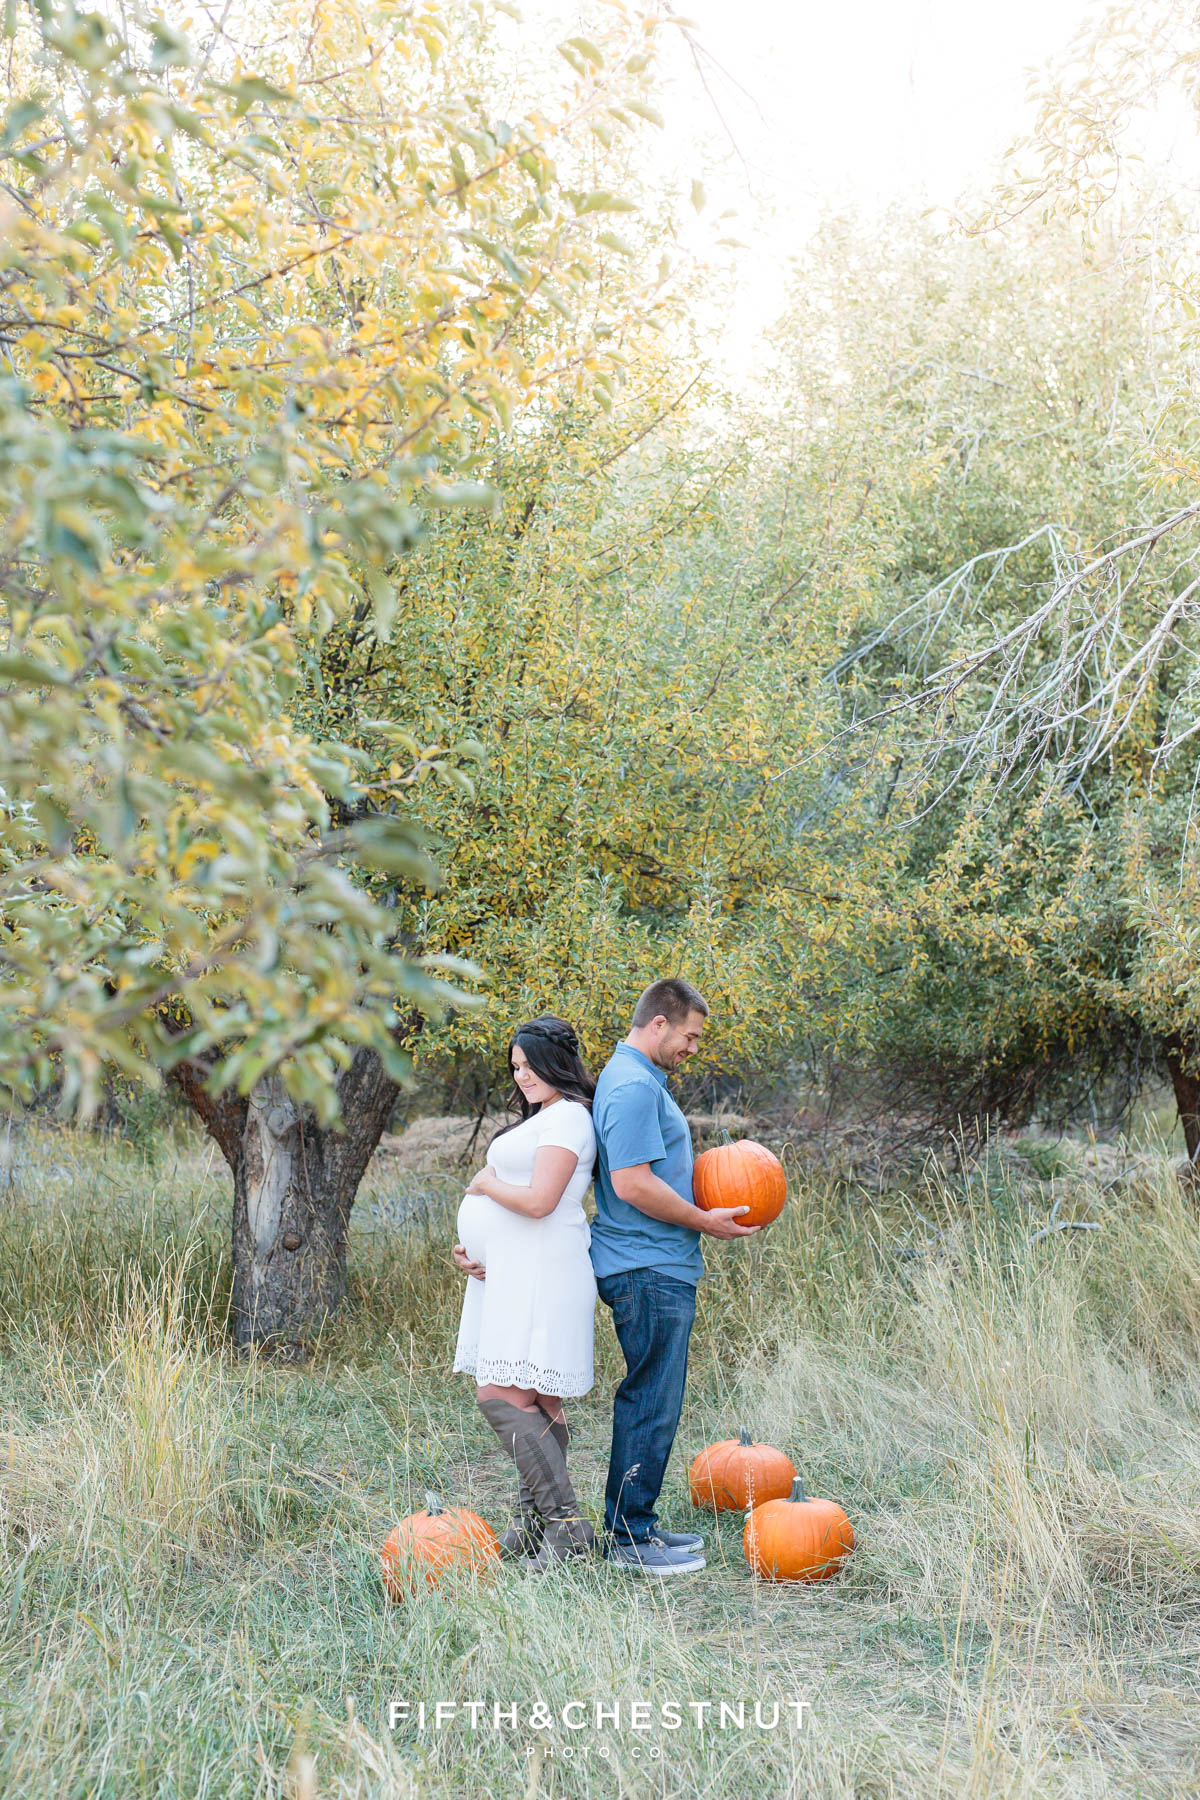 Husband and his pregnant wife stand back to back in an apple orchard surrounded by pumpkins while he looks down at a pumpkin he's holding and she looks down at her baby bump for their fall maternity portraits